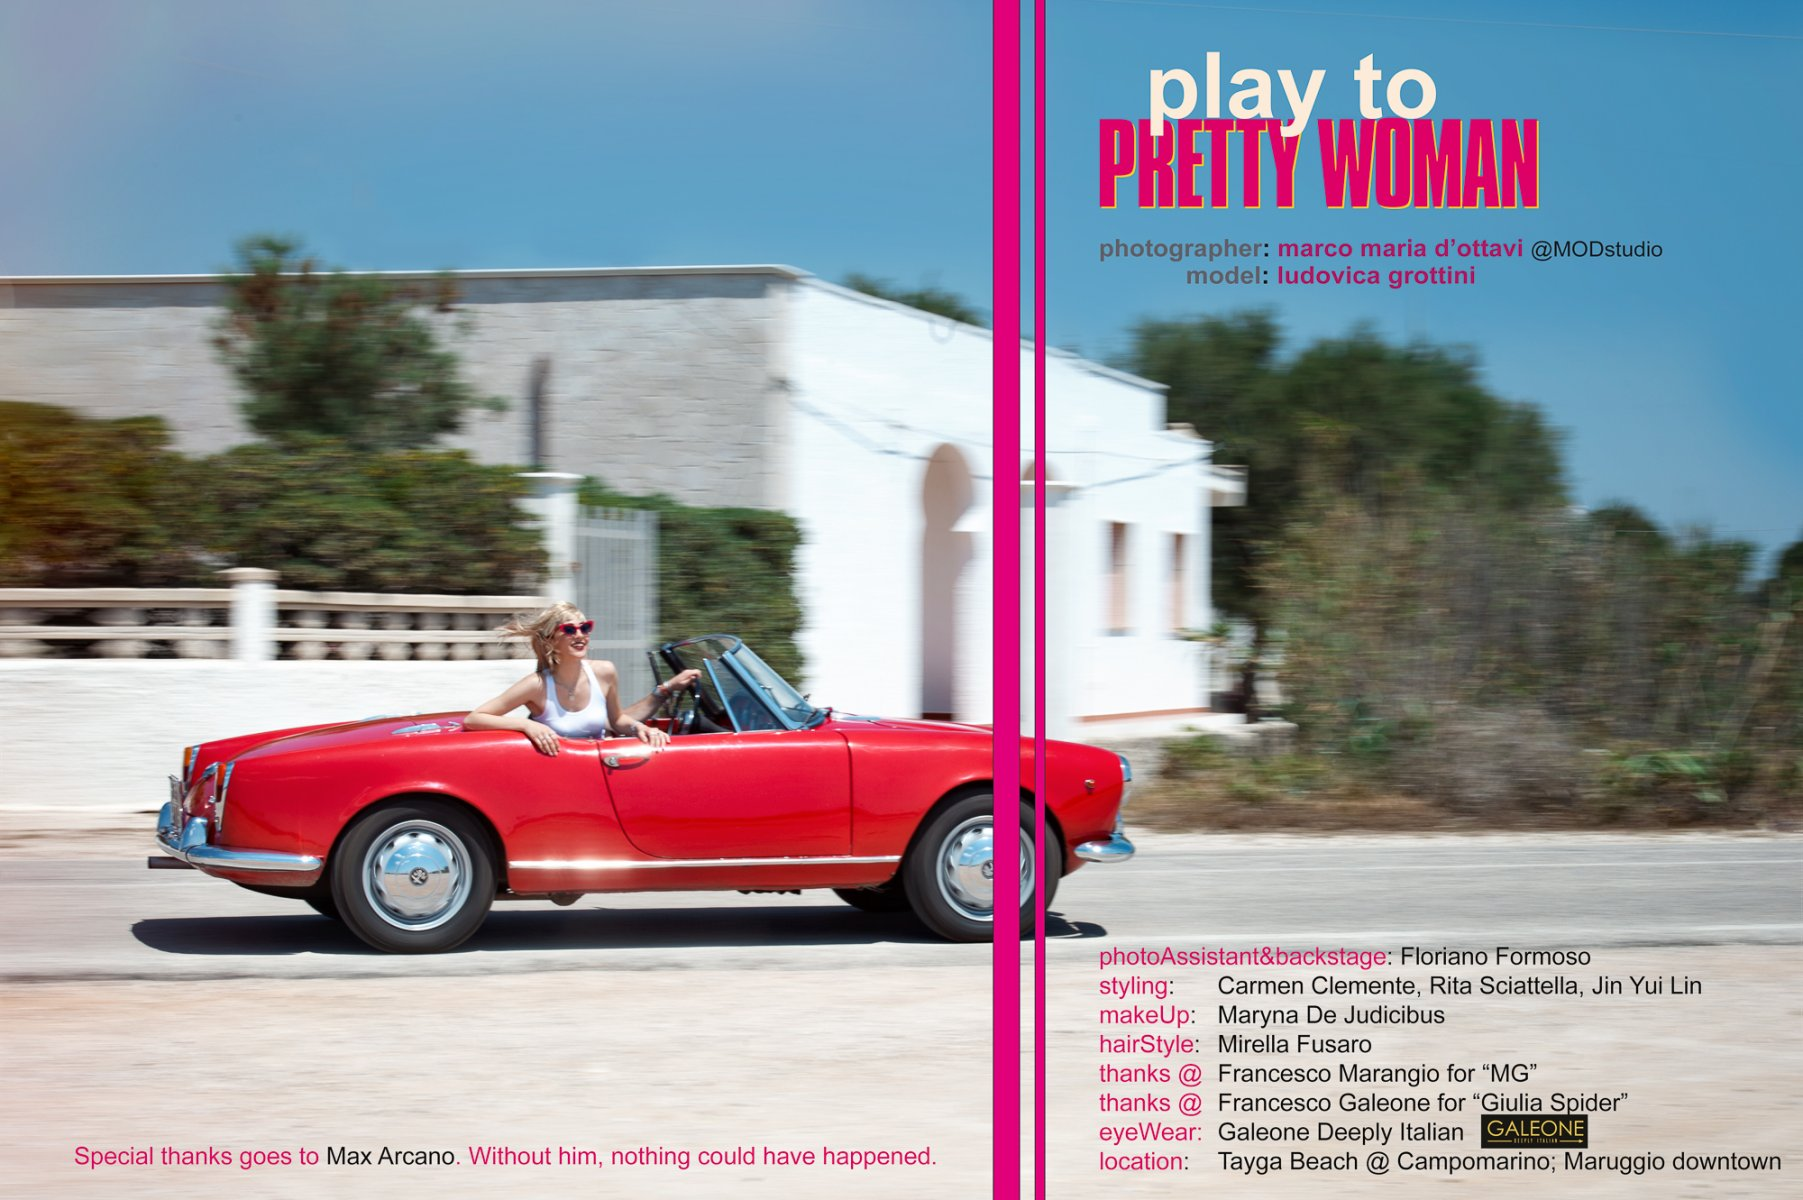 Play to Pretty Woman